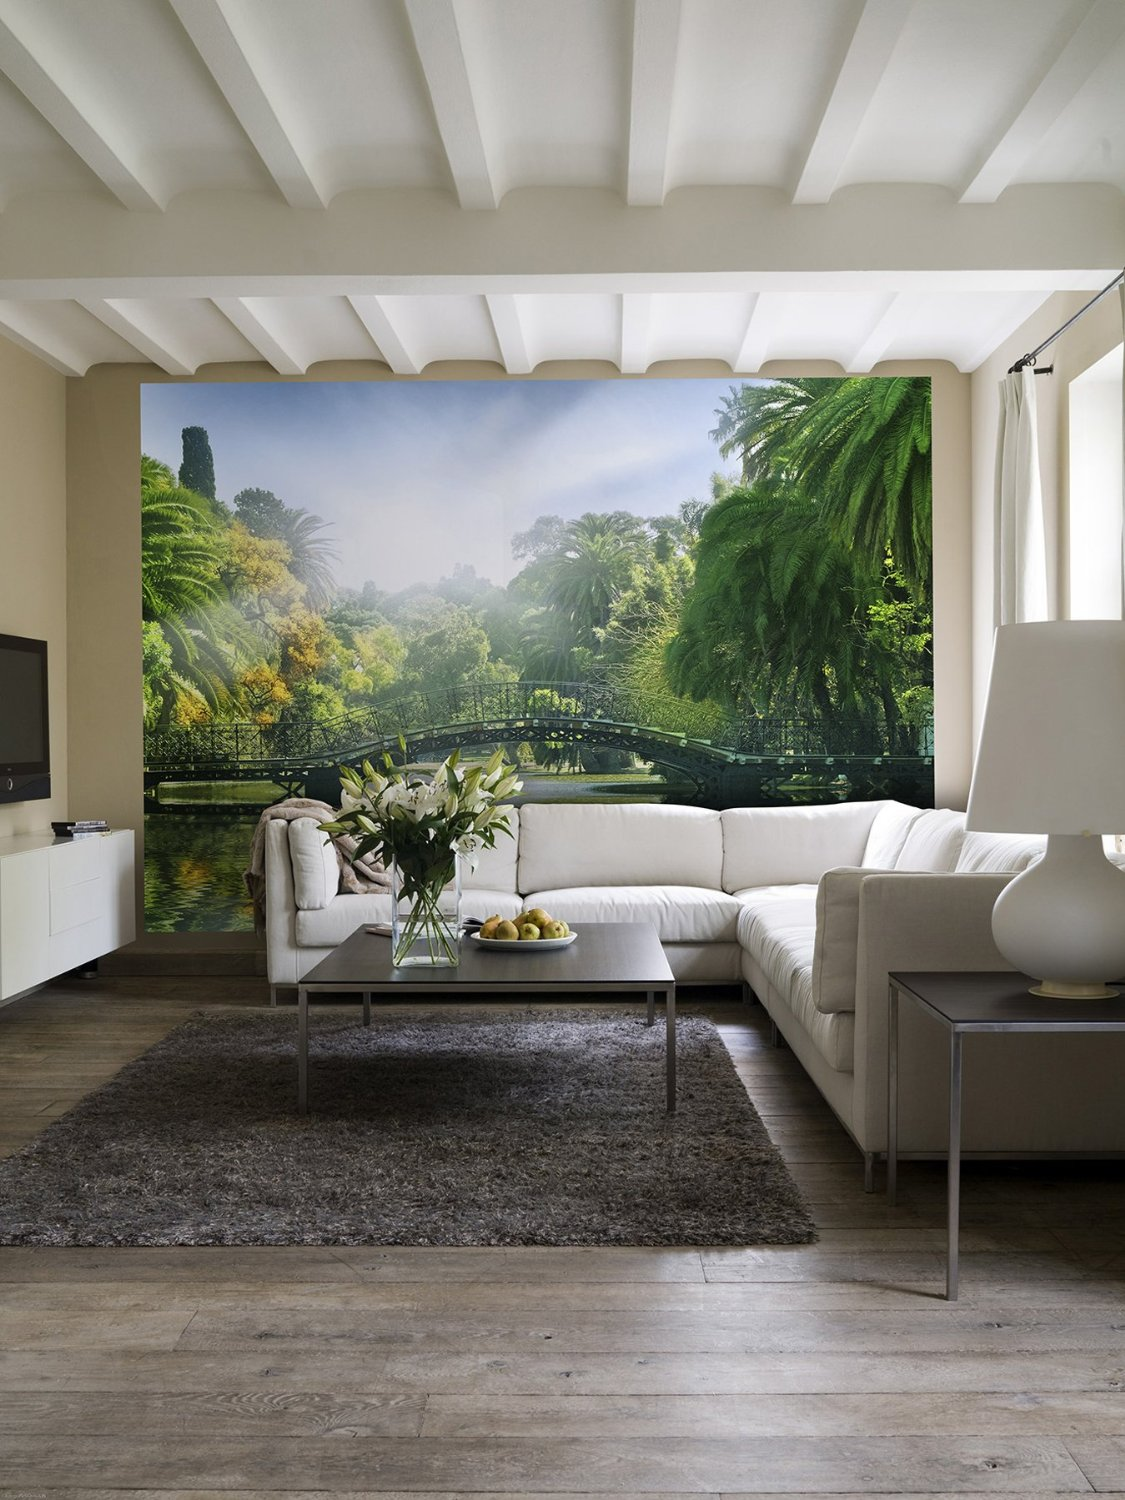 Bridge In The Sunlight Wall Mural DM132